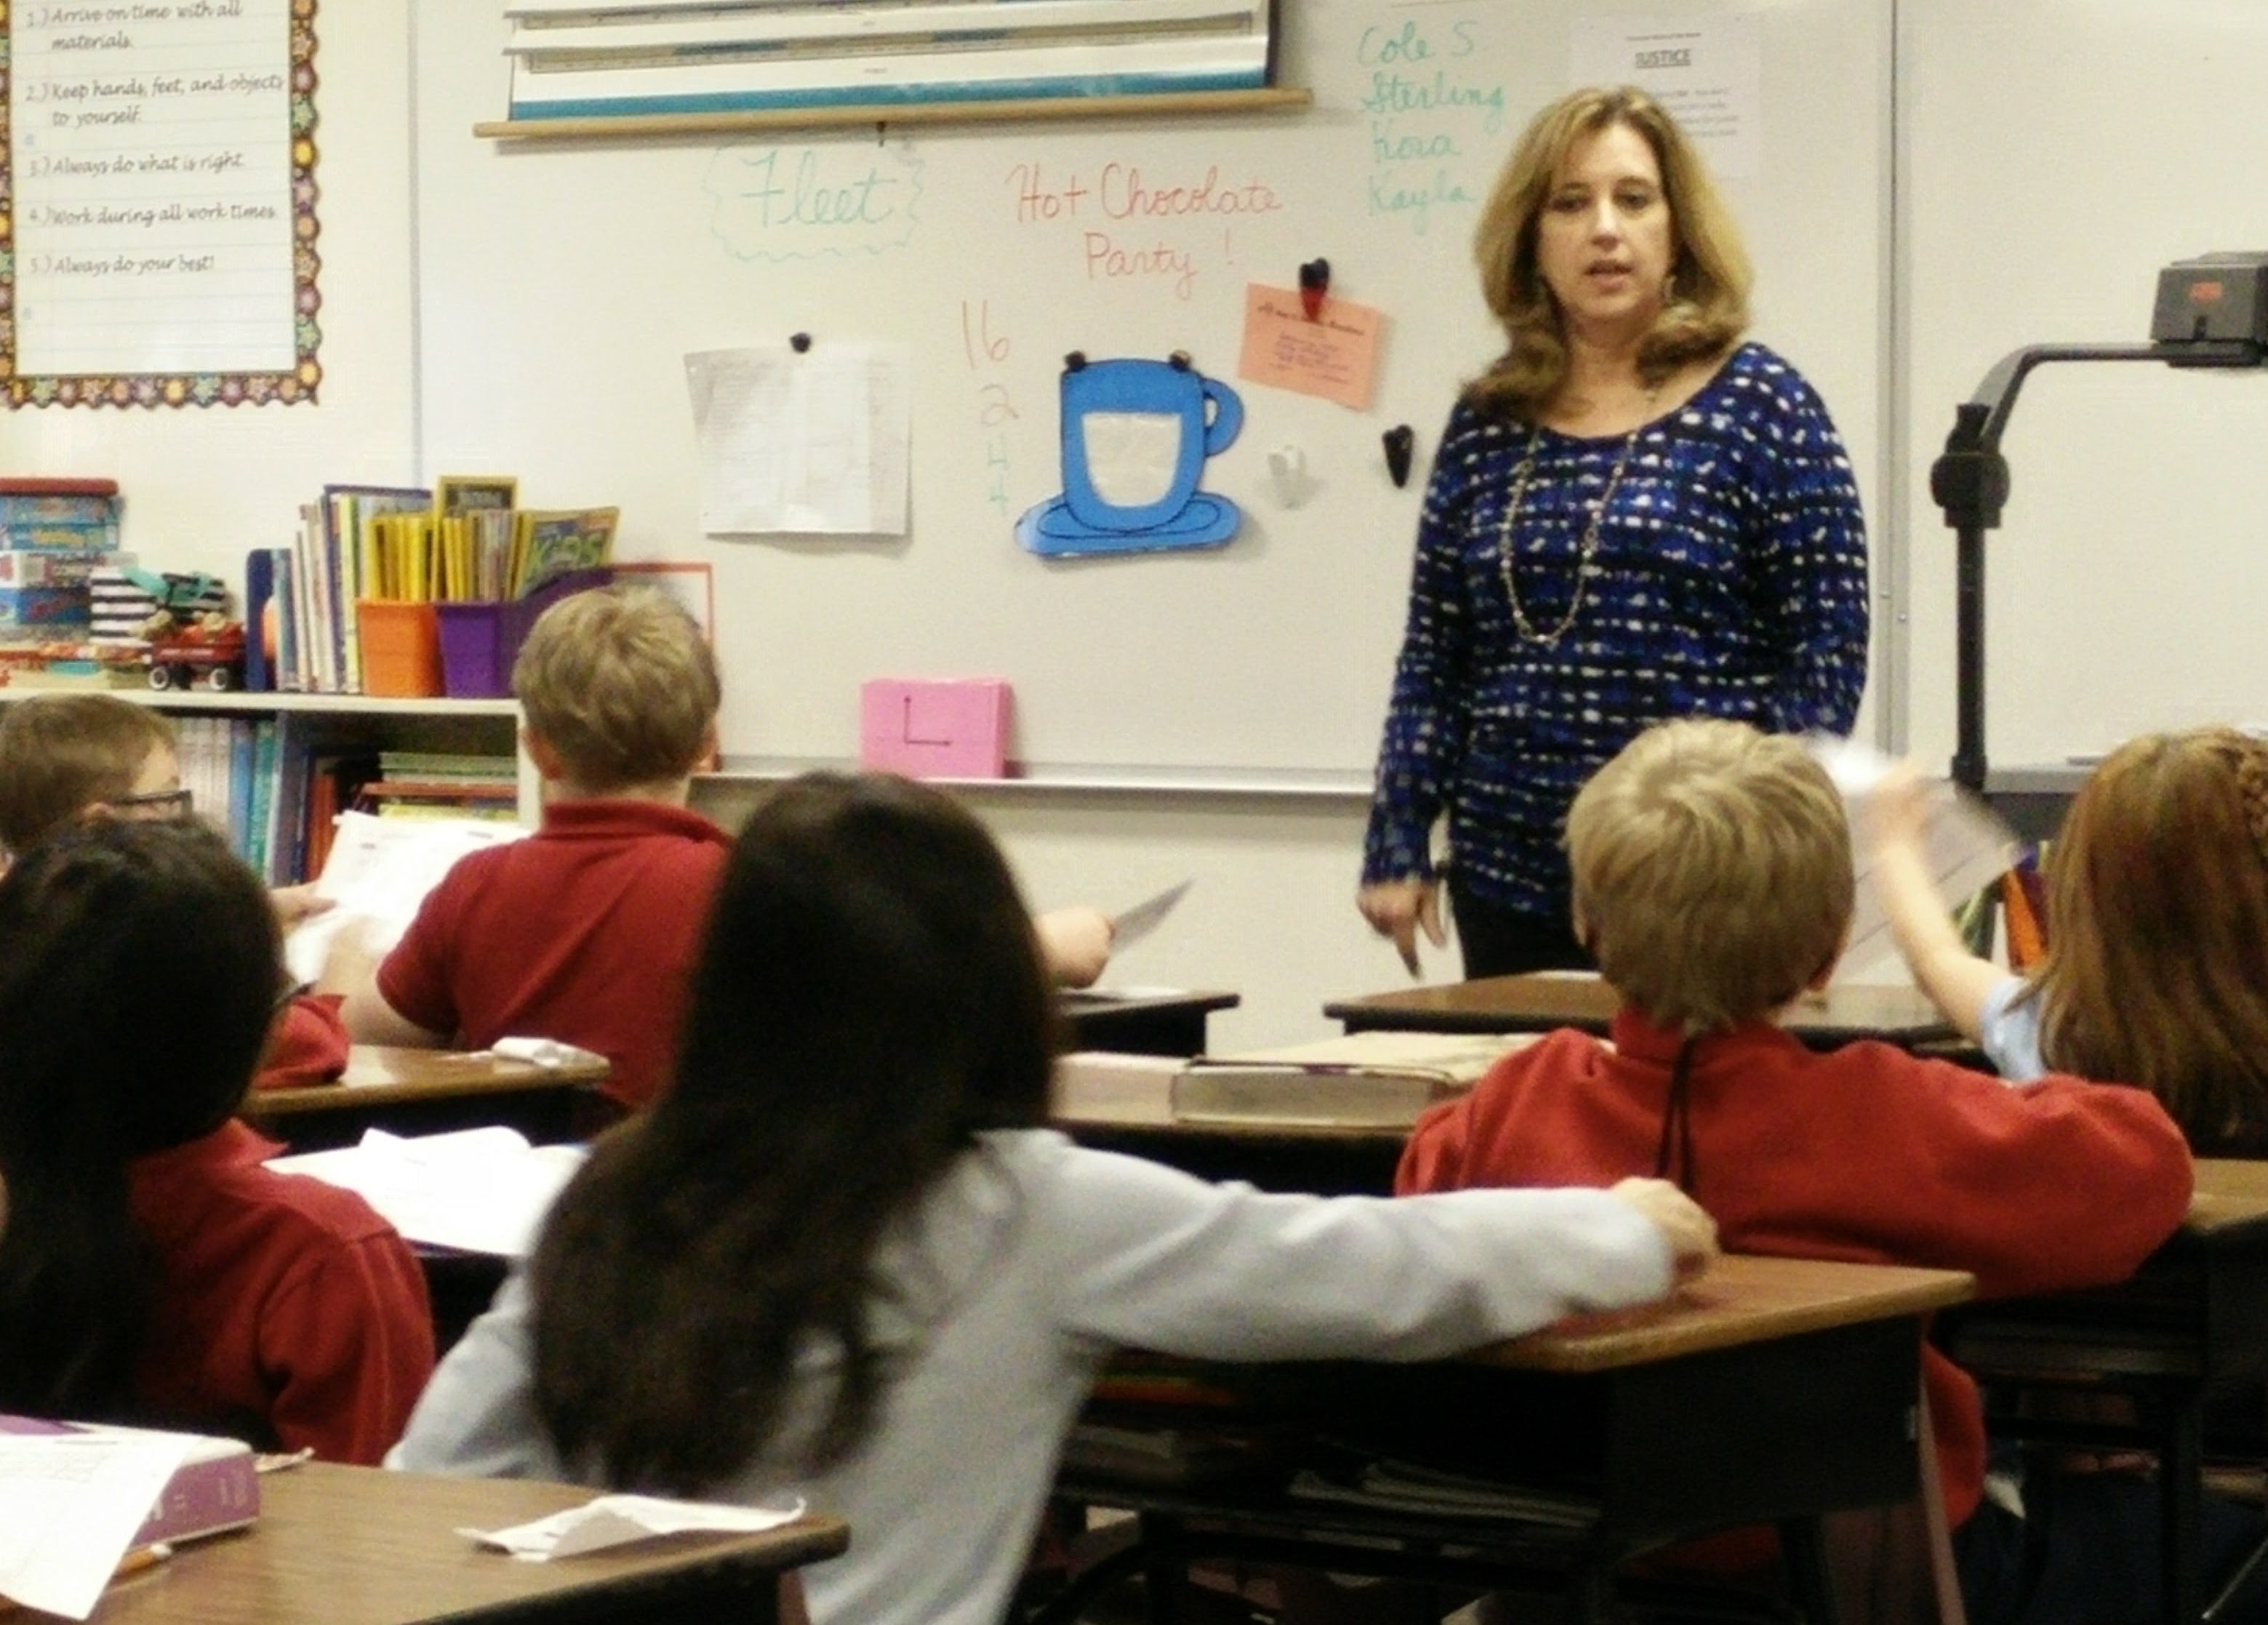 students at the vanguard school learning spanish